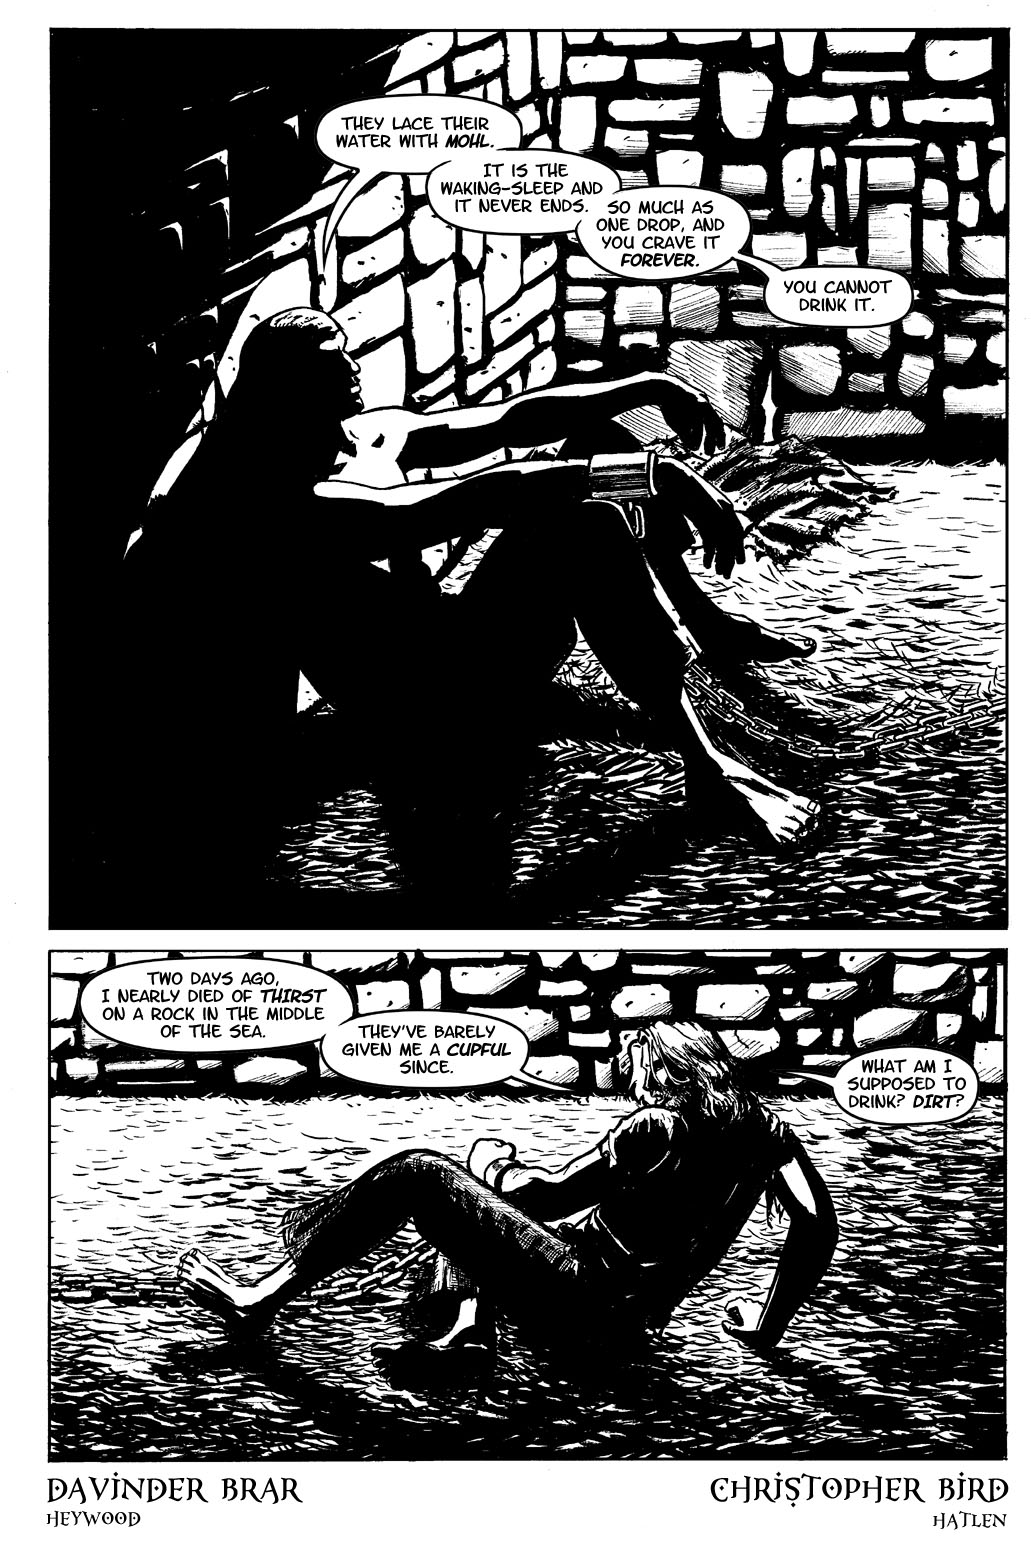 Book 2, page 1